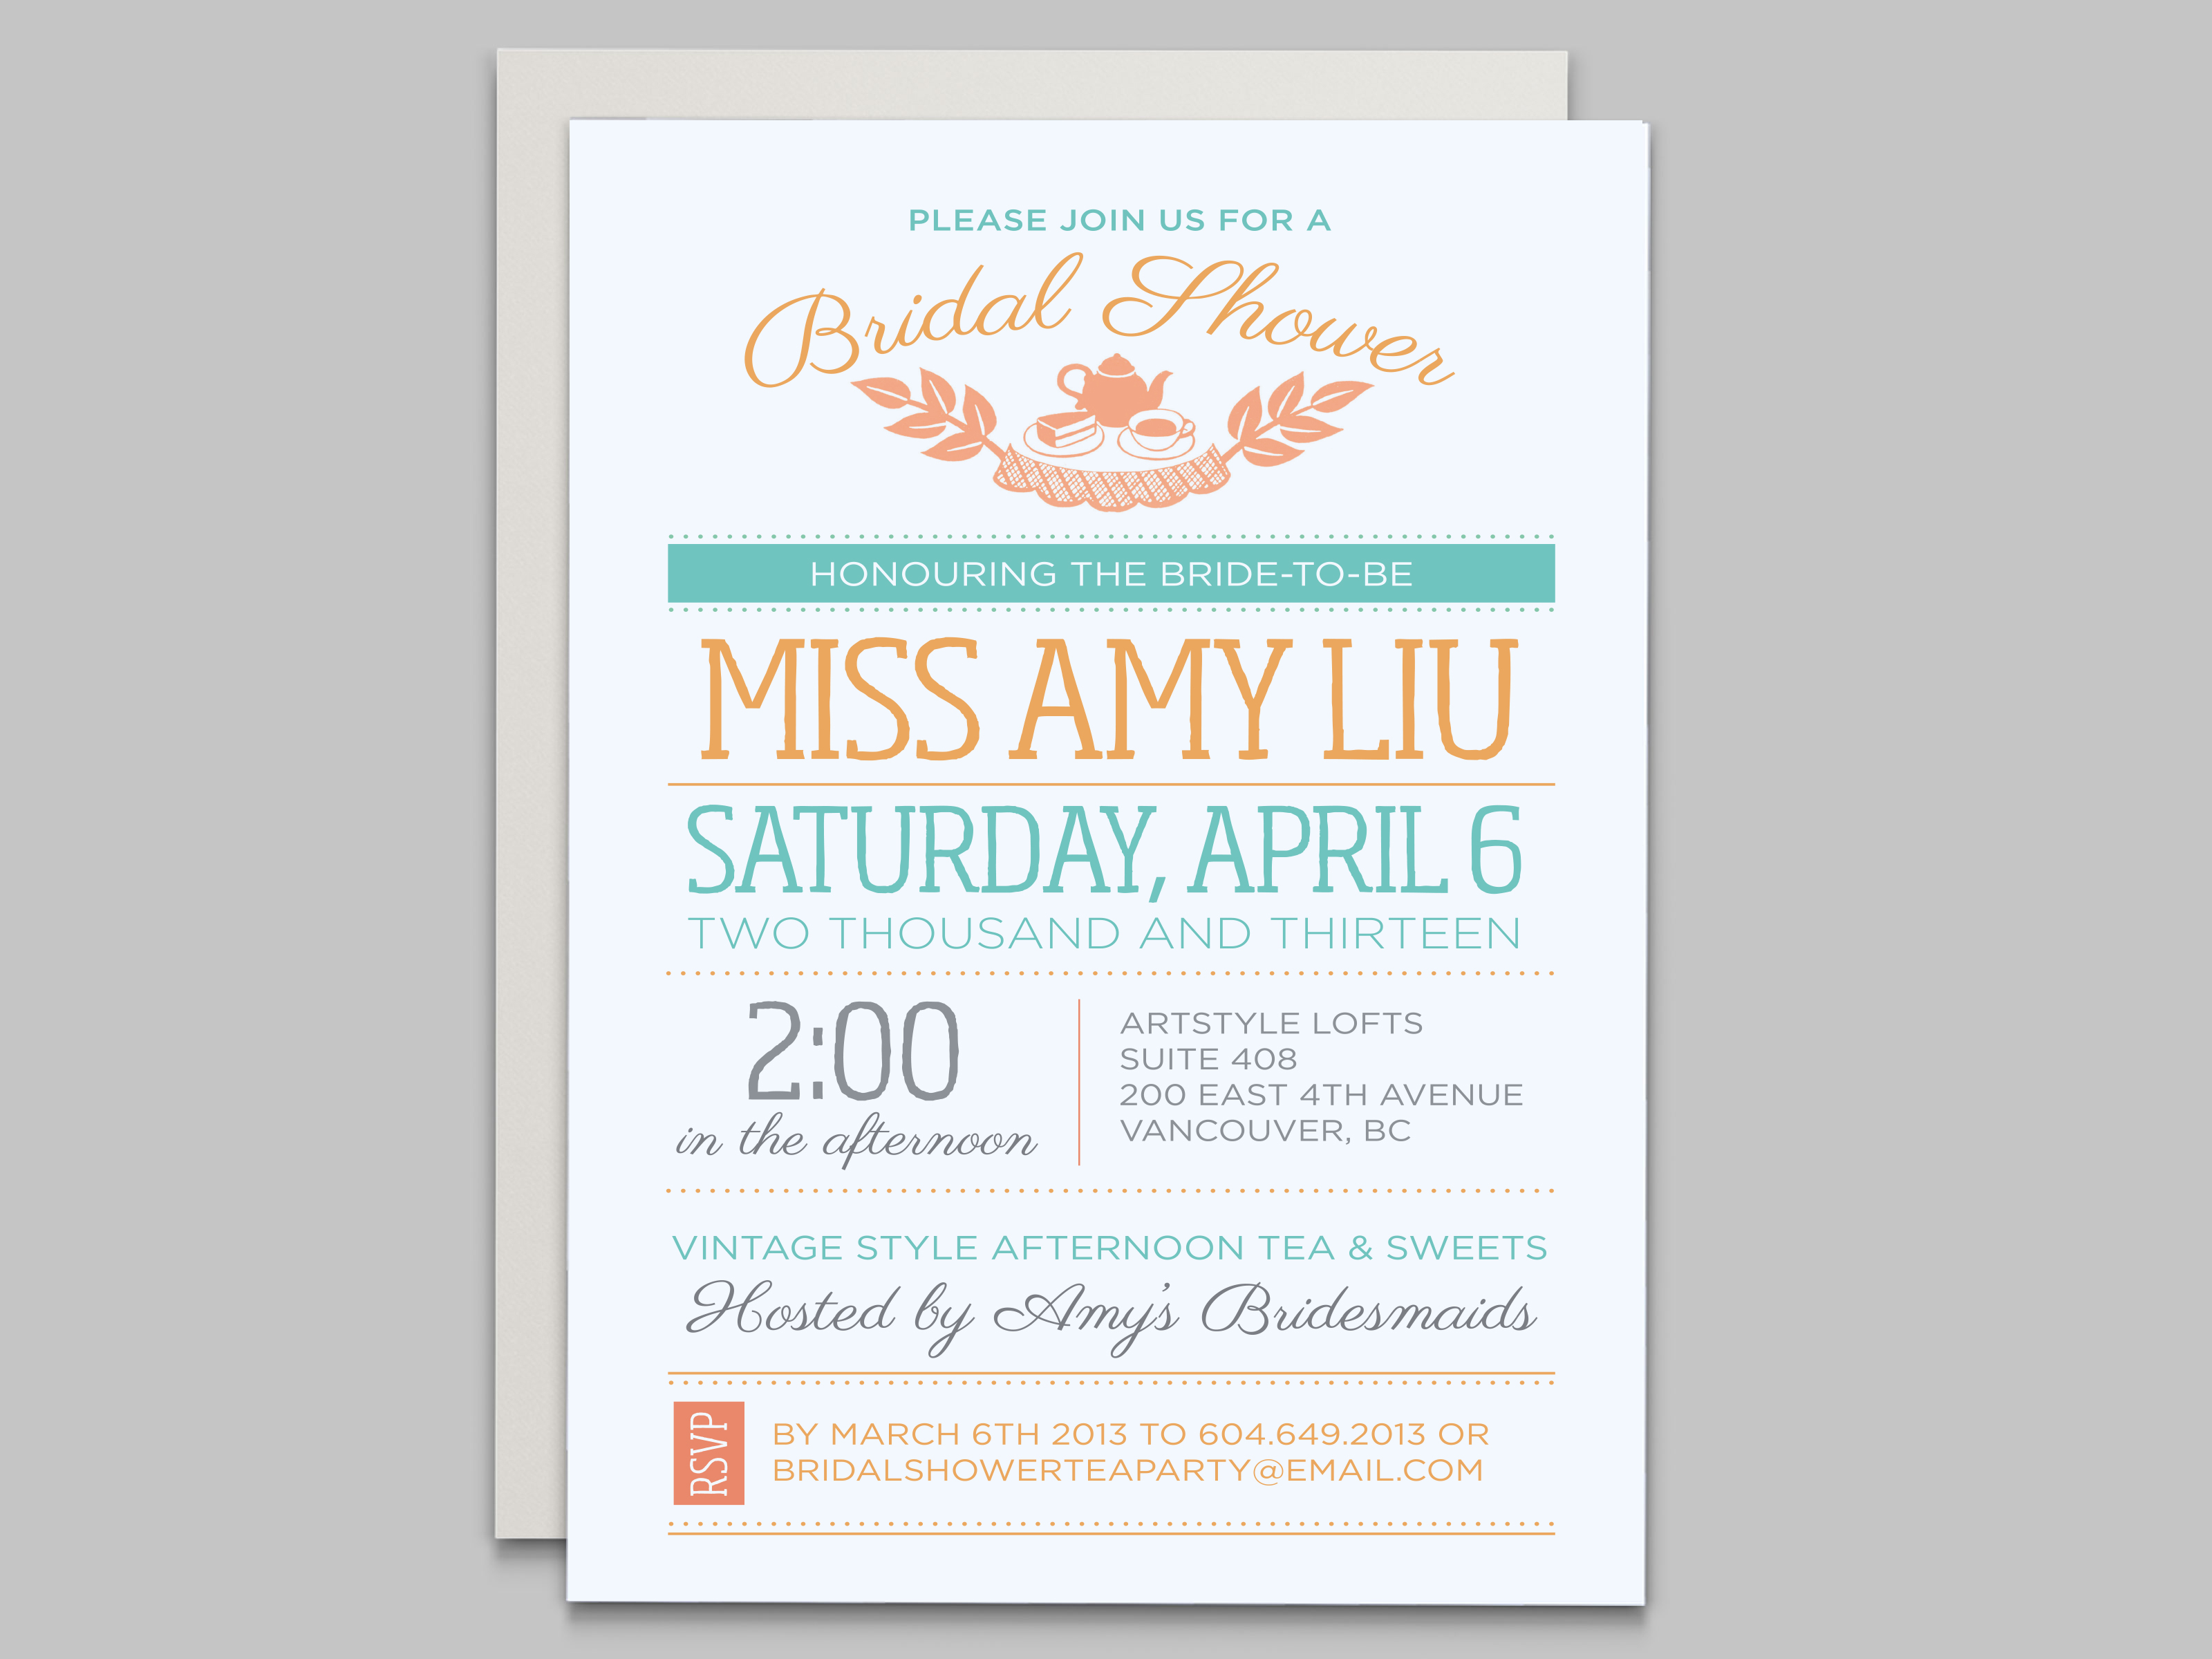 Bridal Shower invitation & party decor